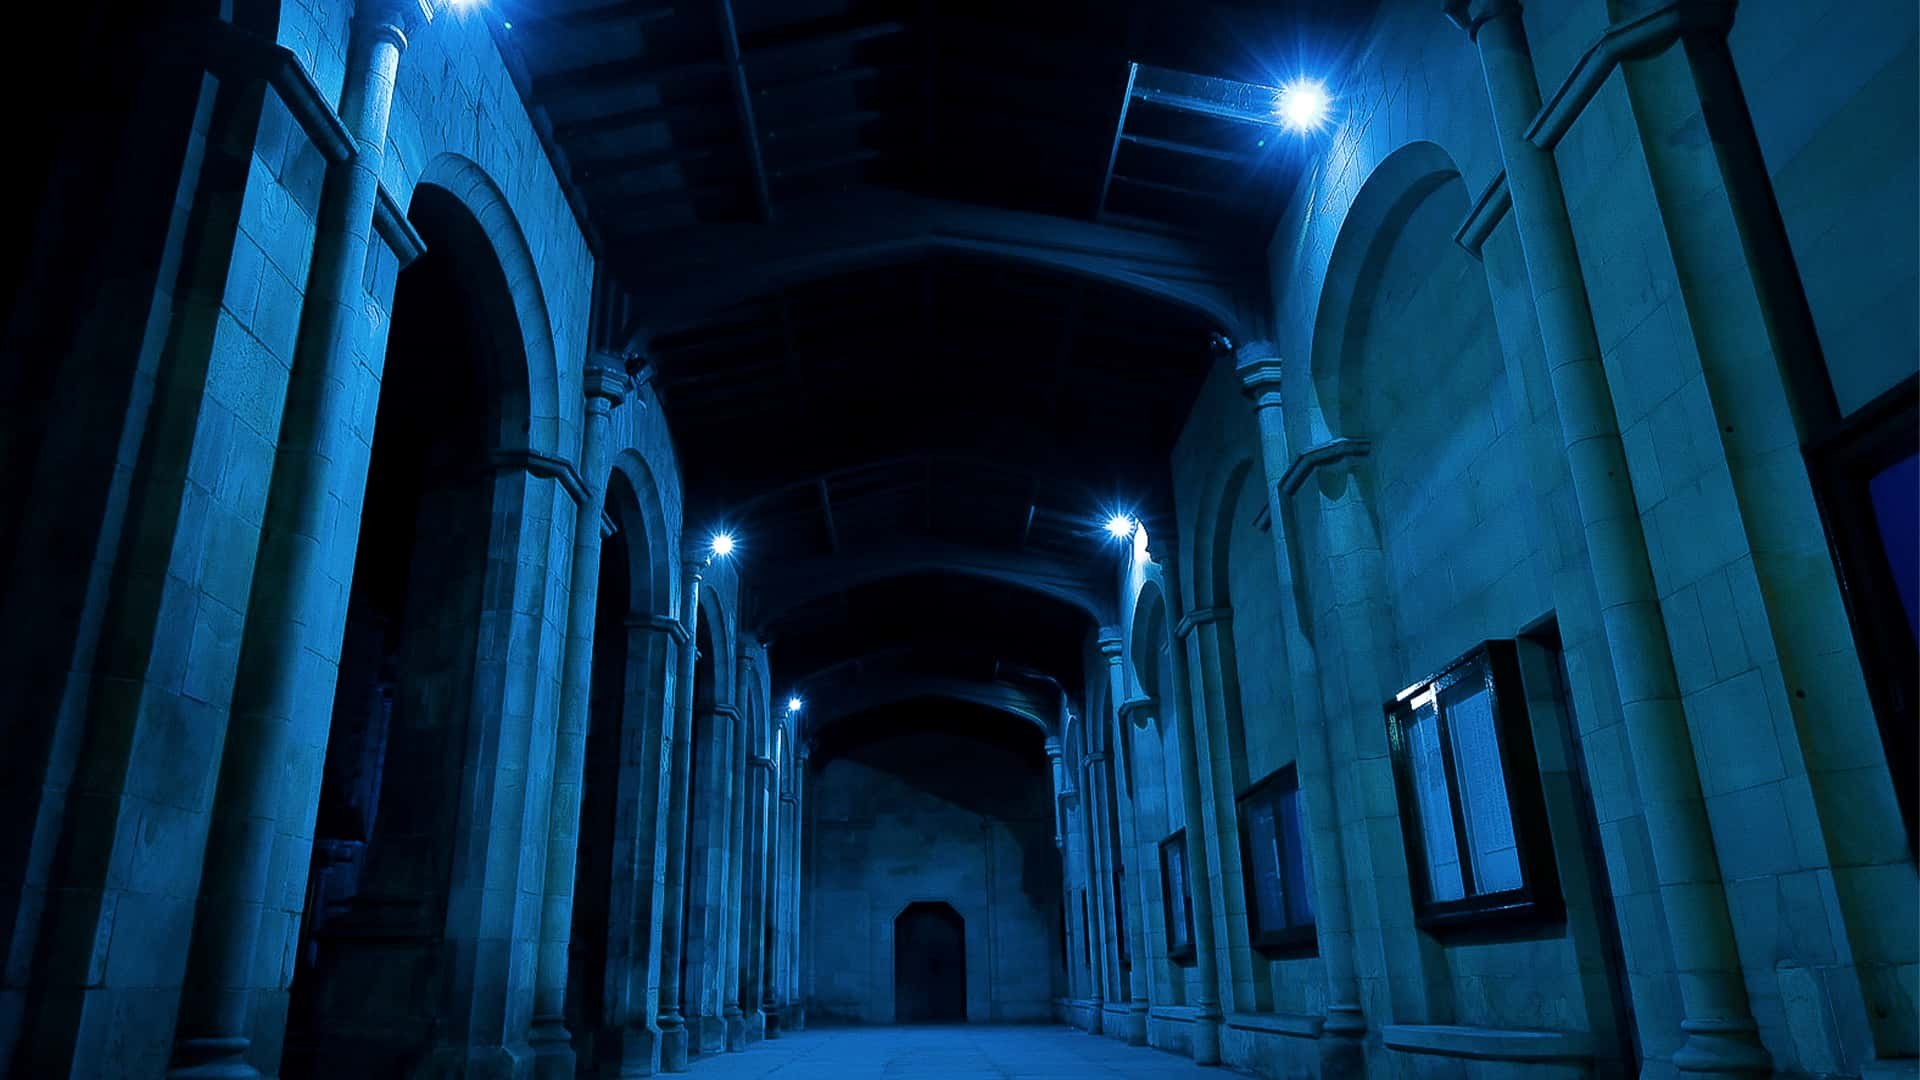 St Salvator's Chapel with blue lights